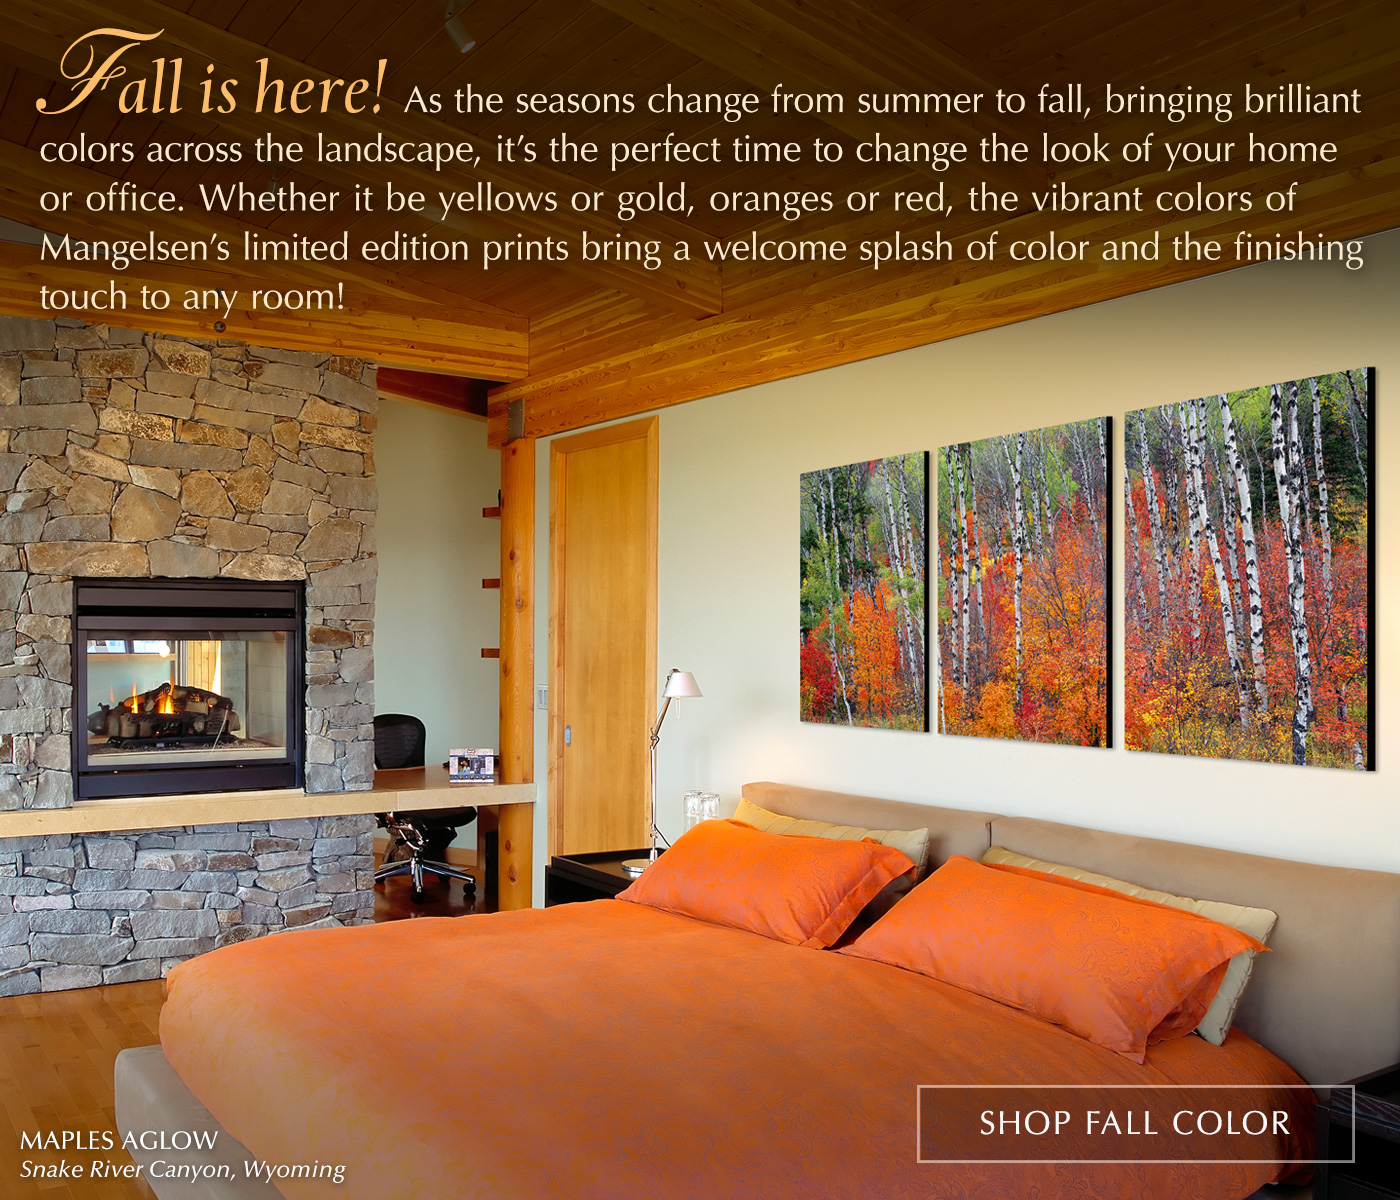 Showing a wrapped canvas triptych of Maples Aglow over a bed in a master suite.